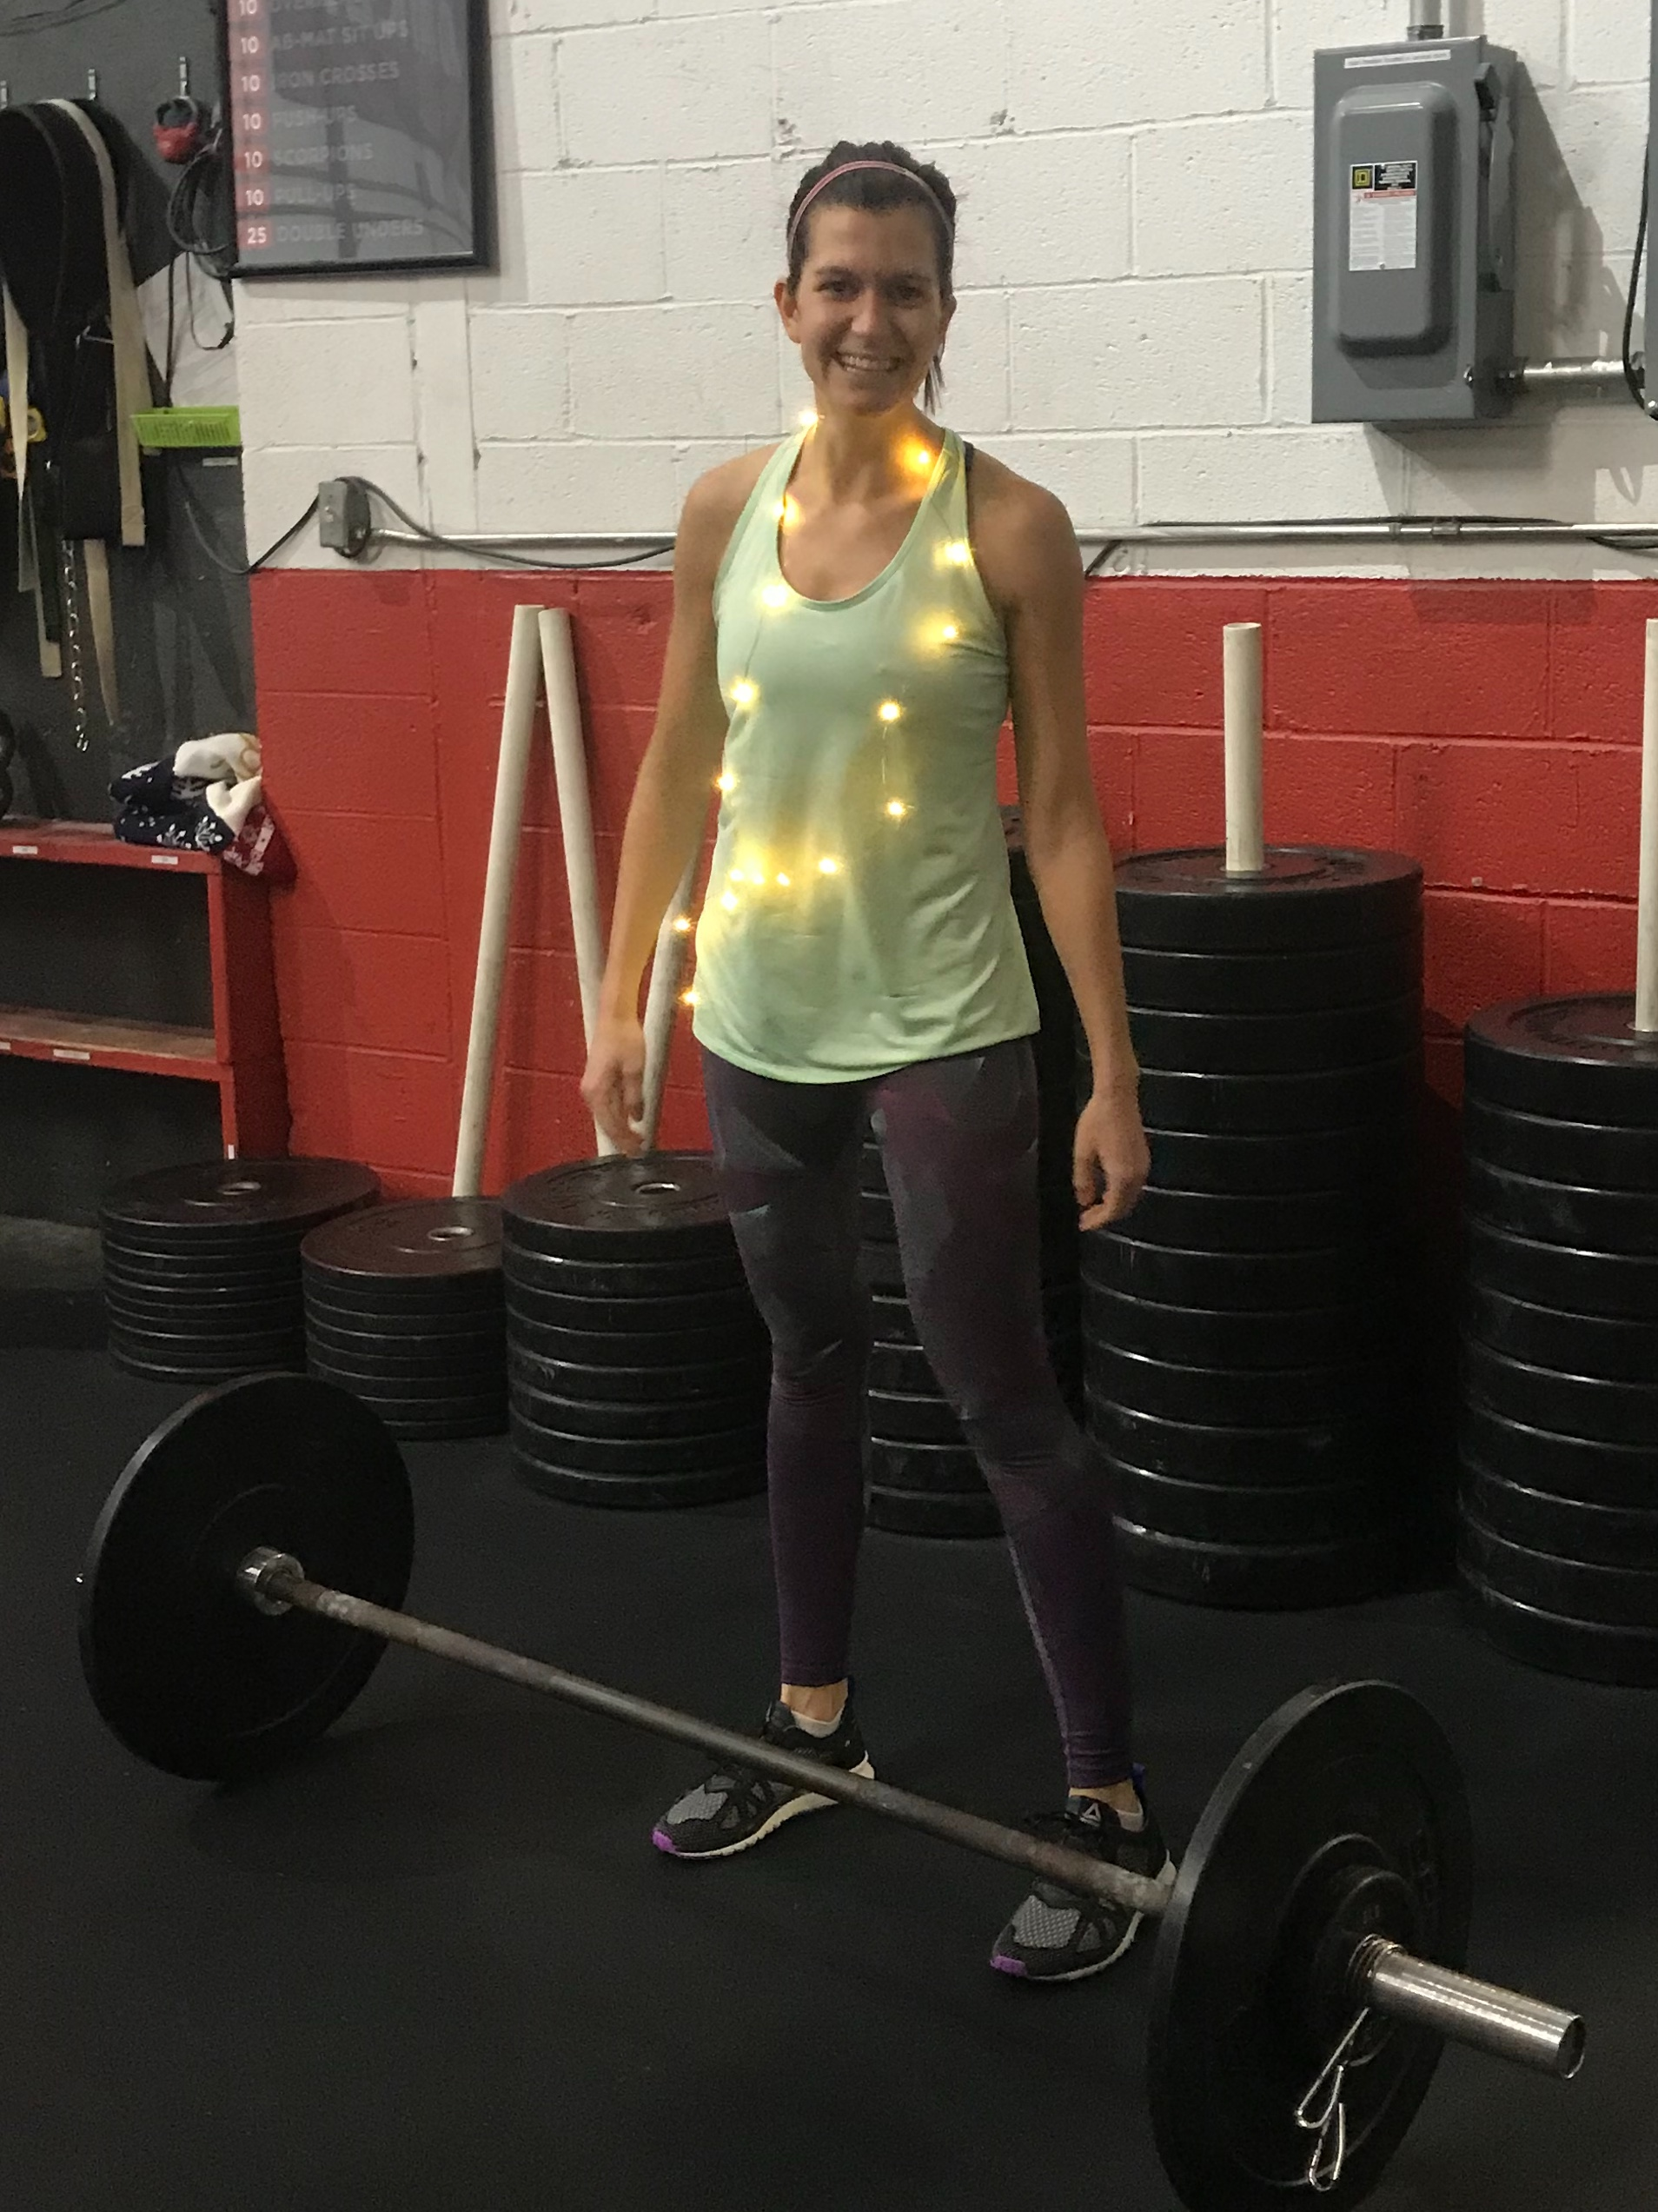 Thursday, December 28 WOD